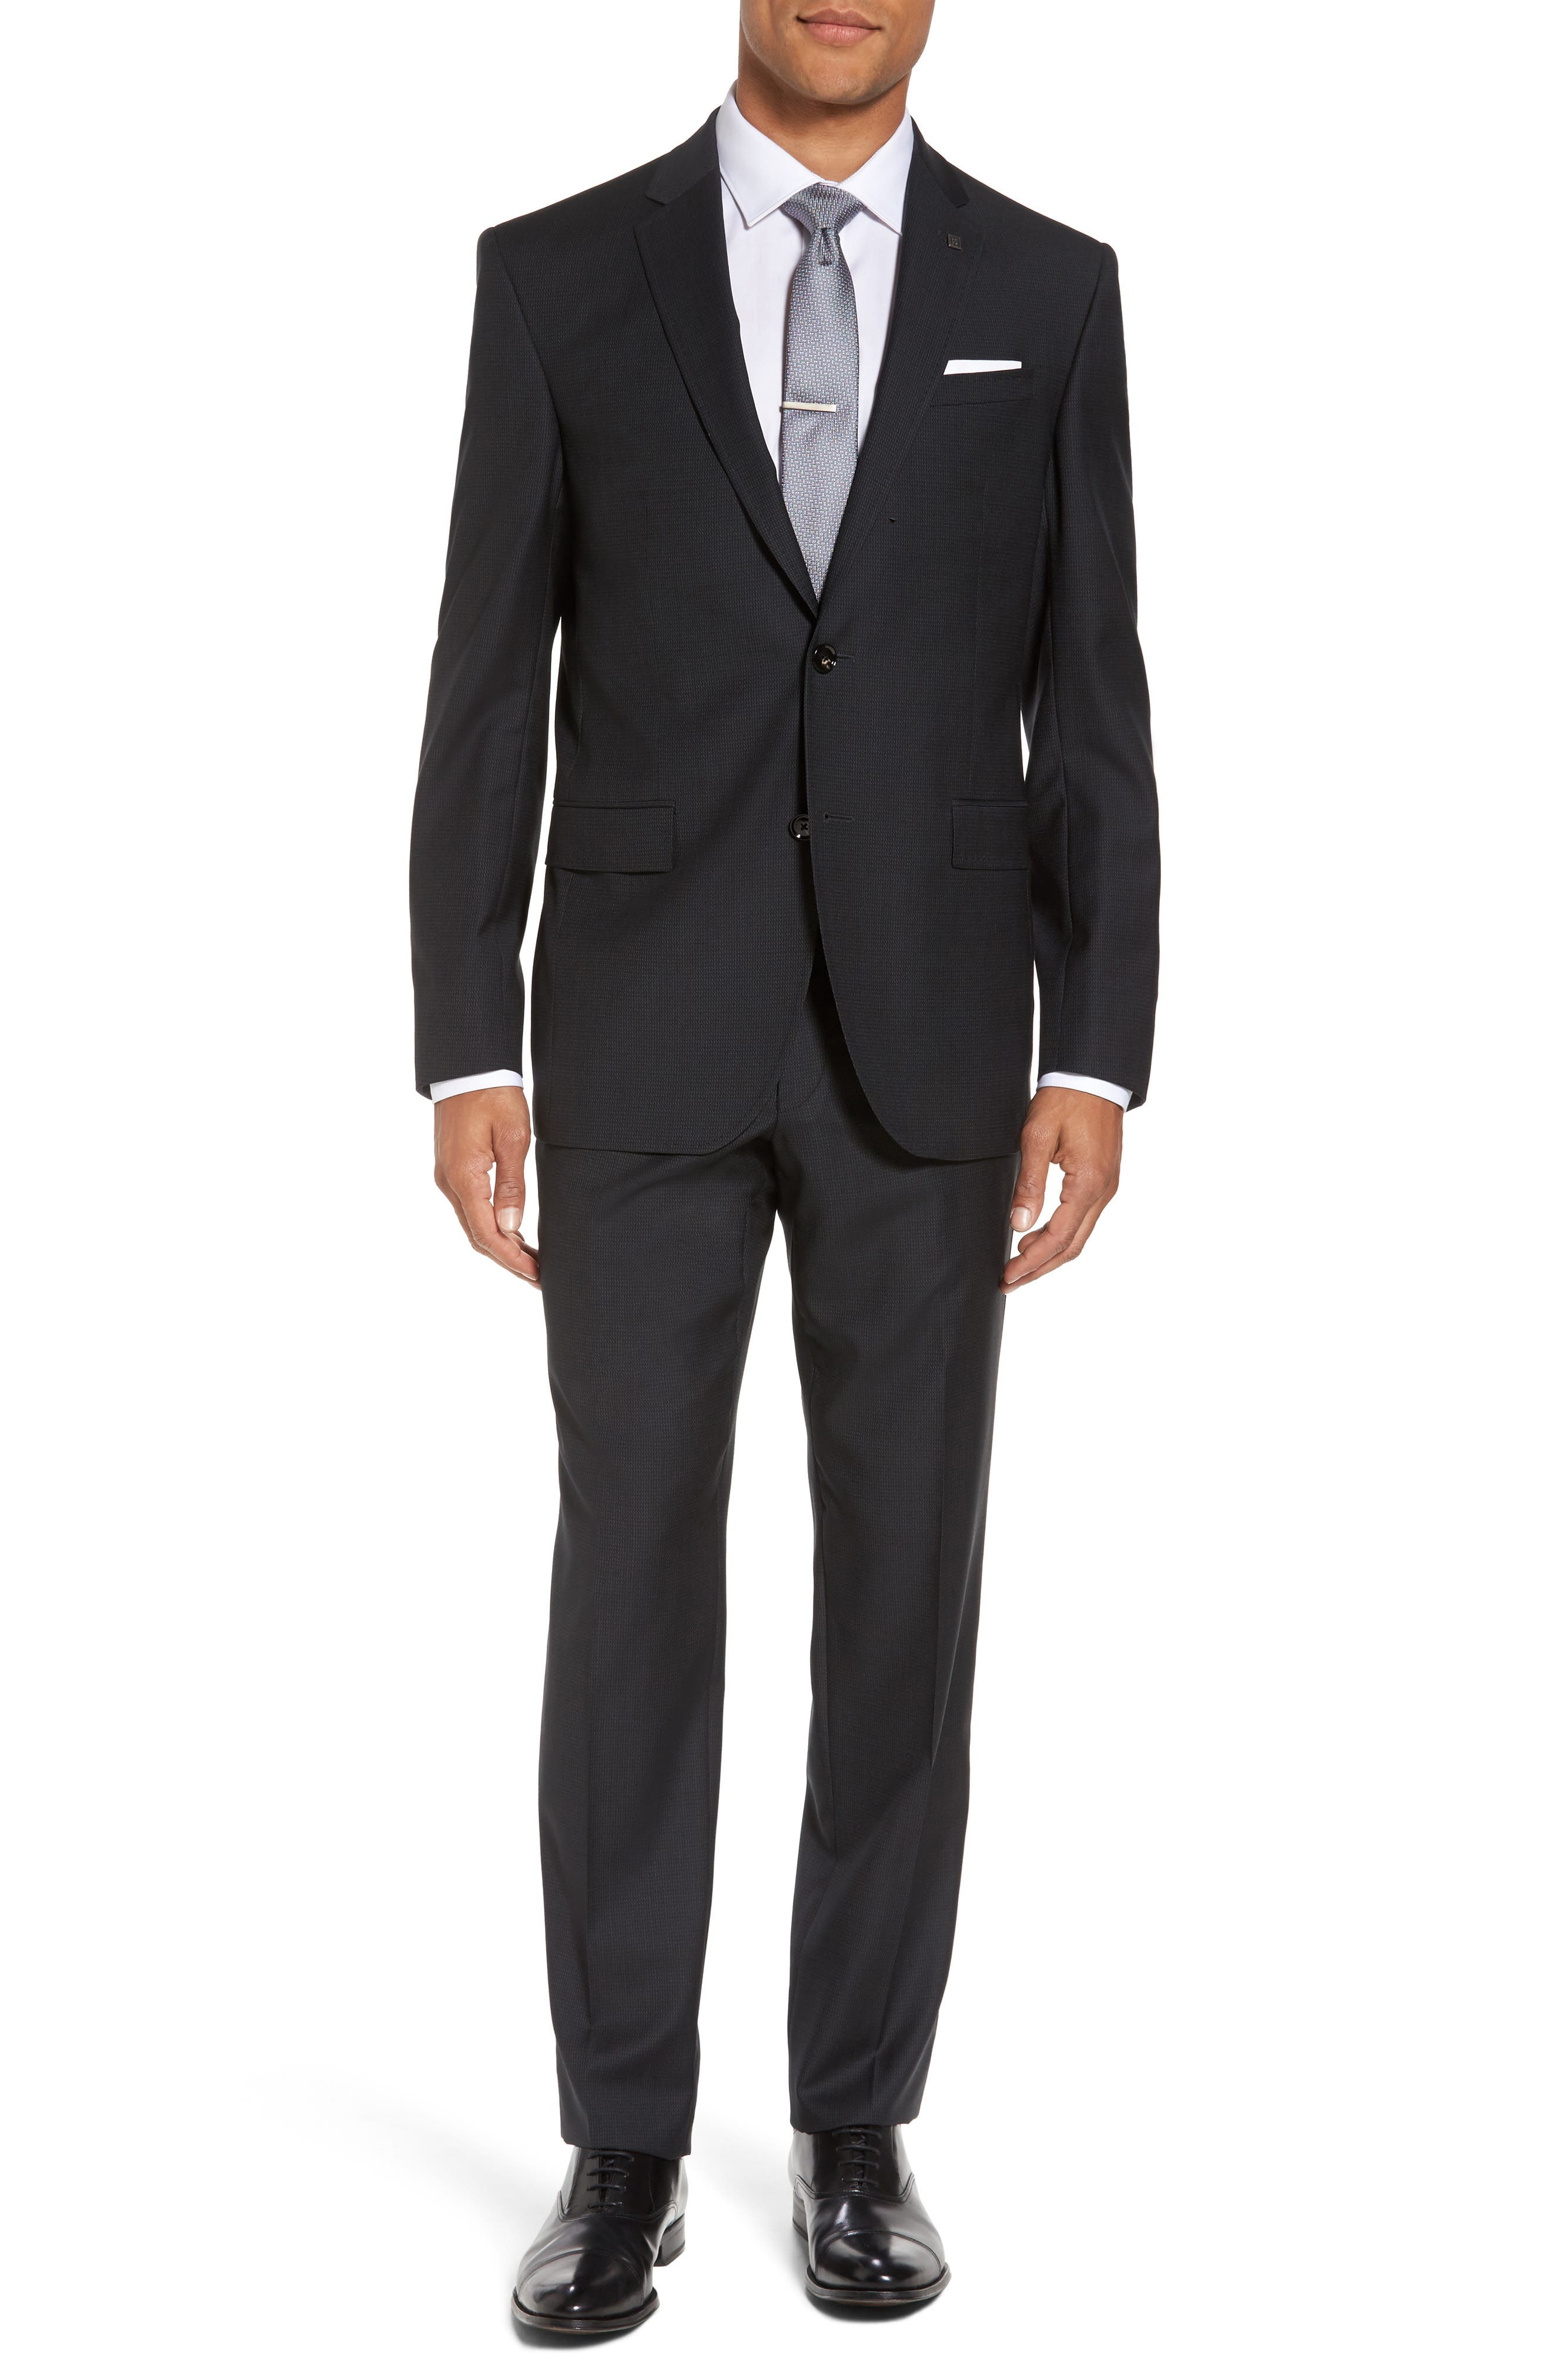 Main Image - Ted Baker London Jay Trim Fit Solid Wool Suit